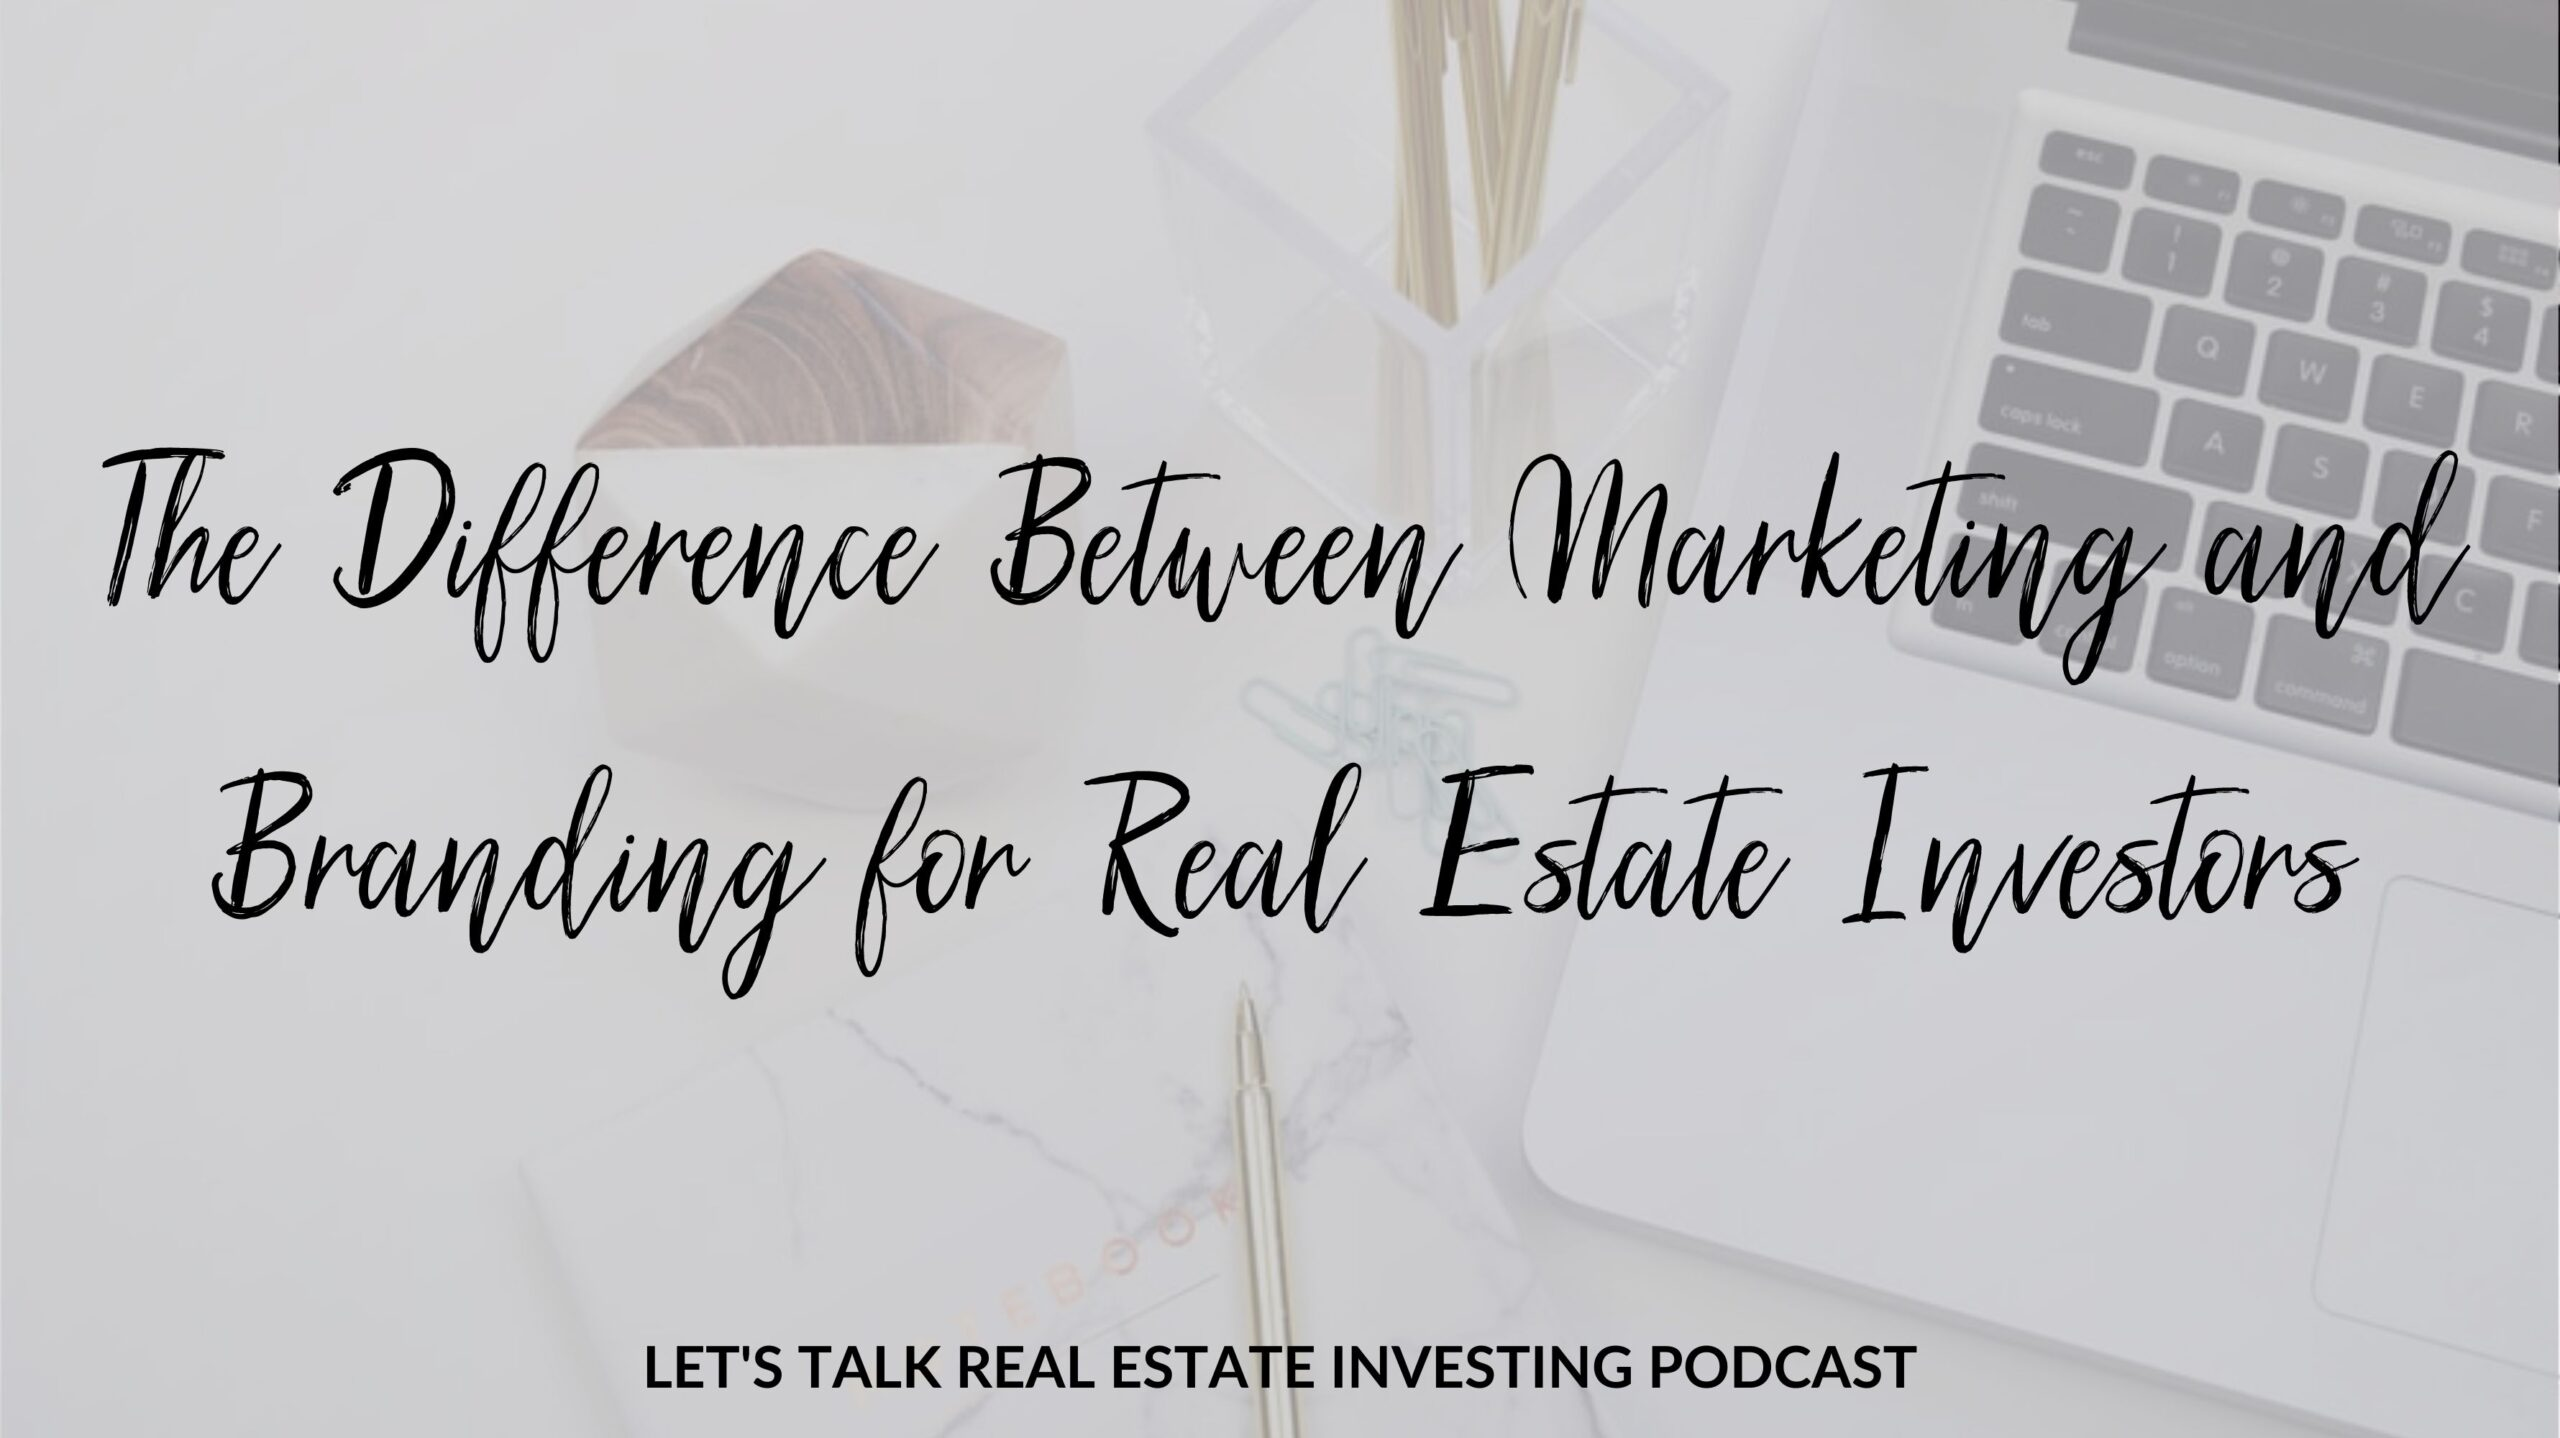 The Difference Between Marketing and Branding for Real Estate Investors